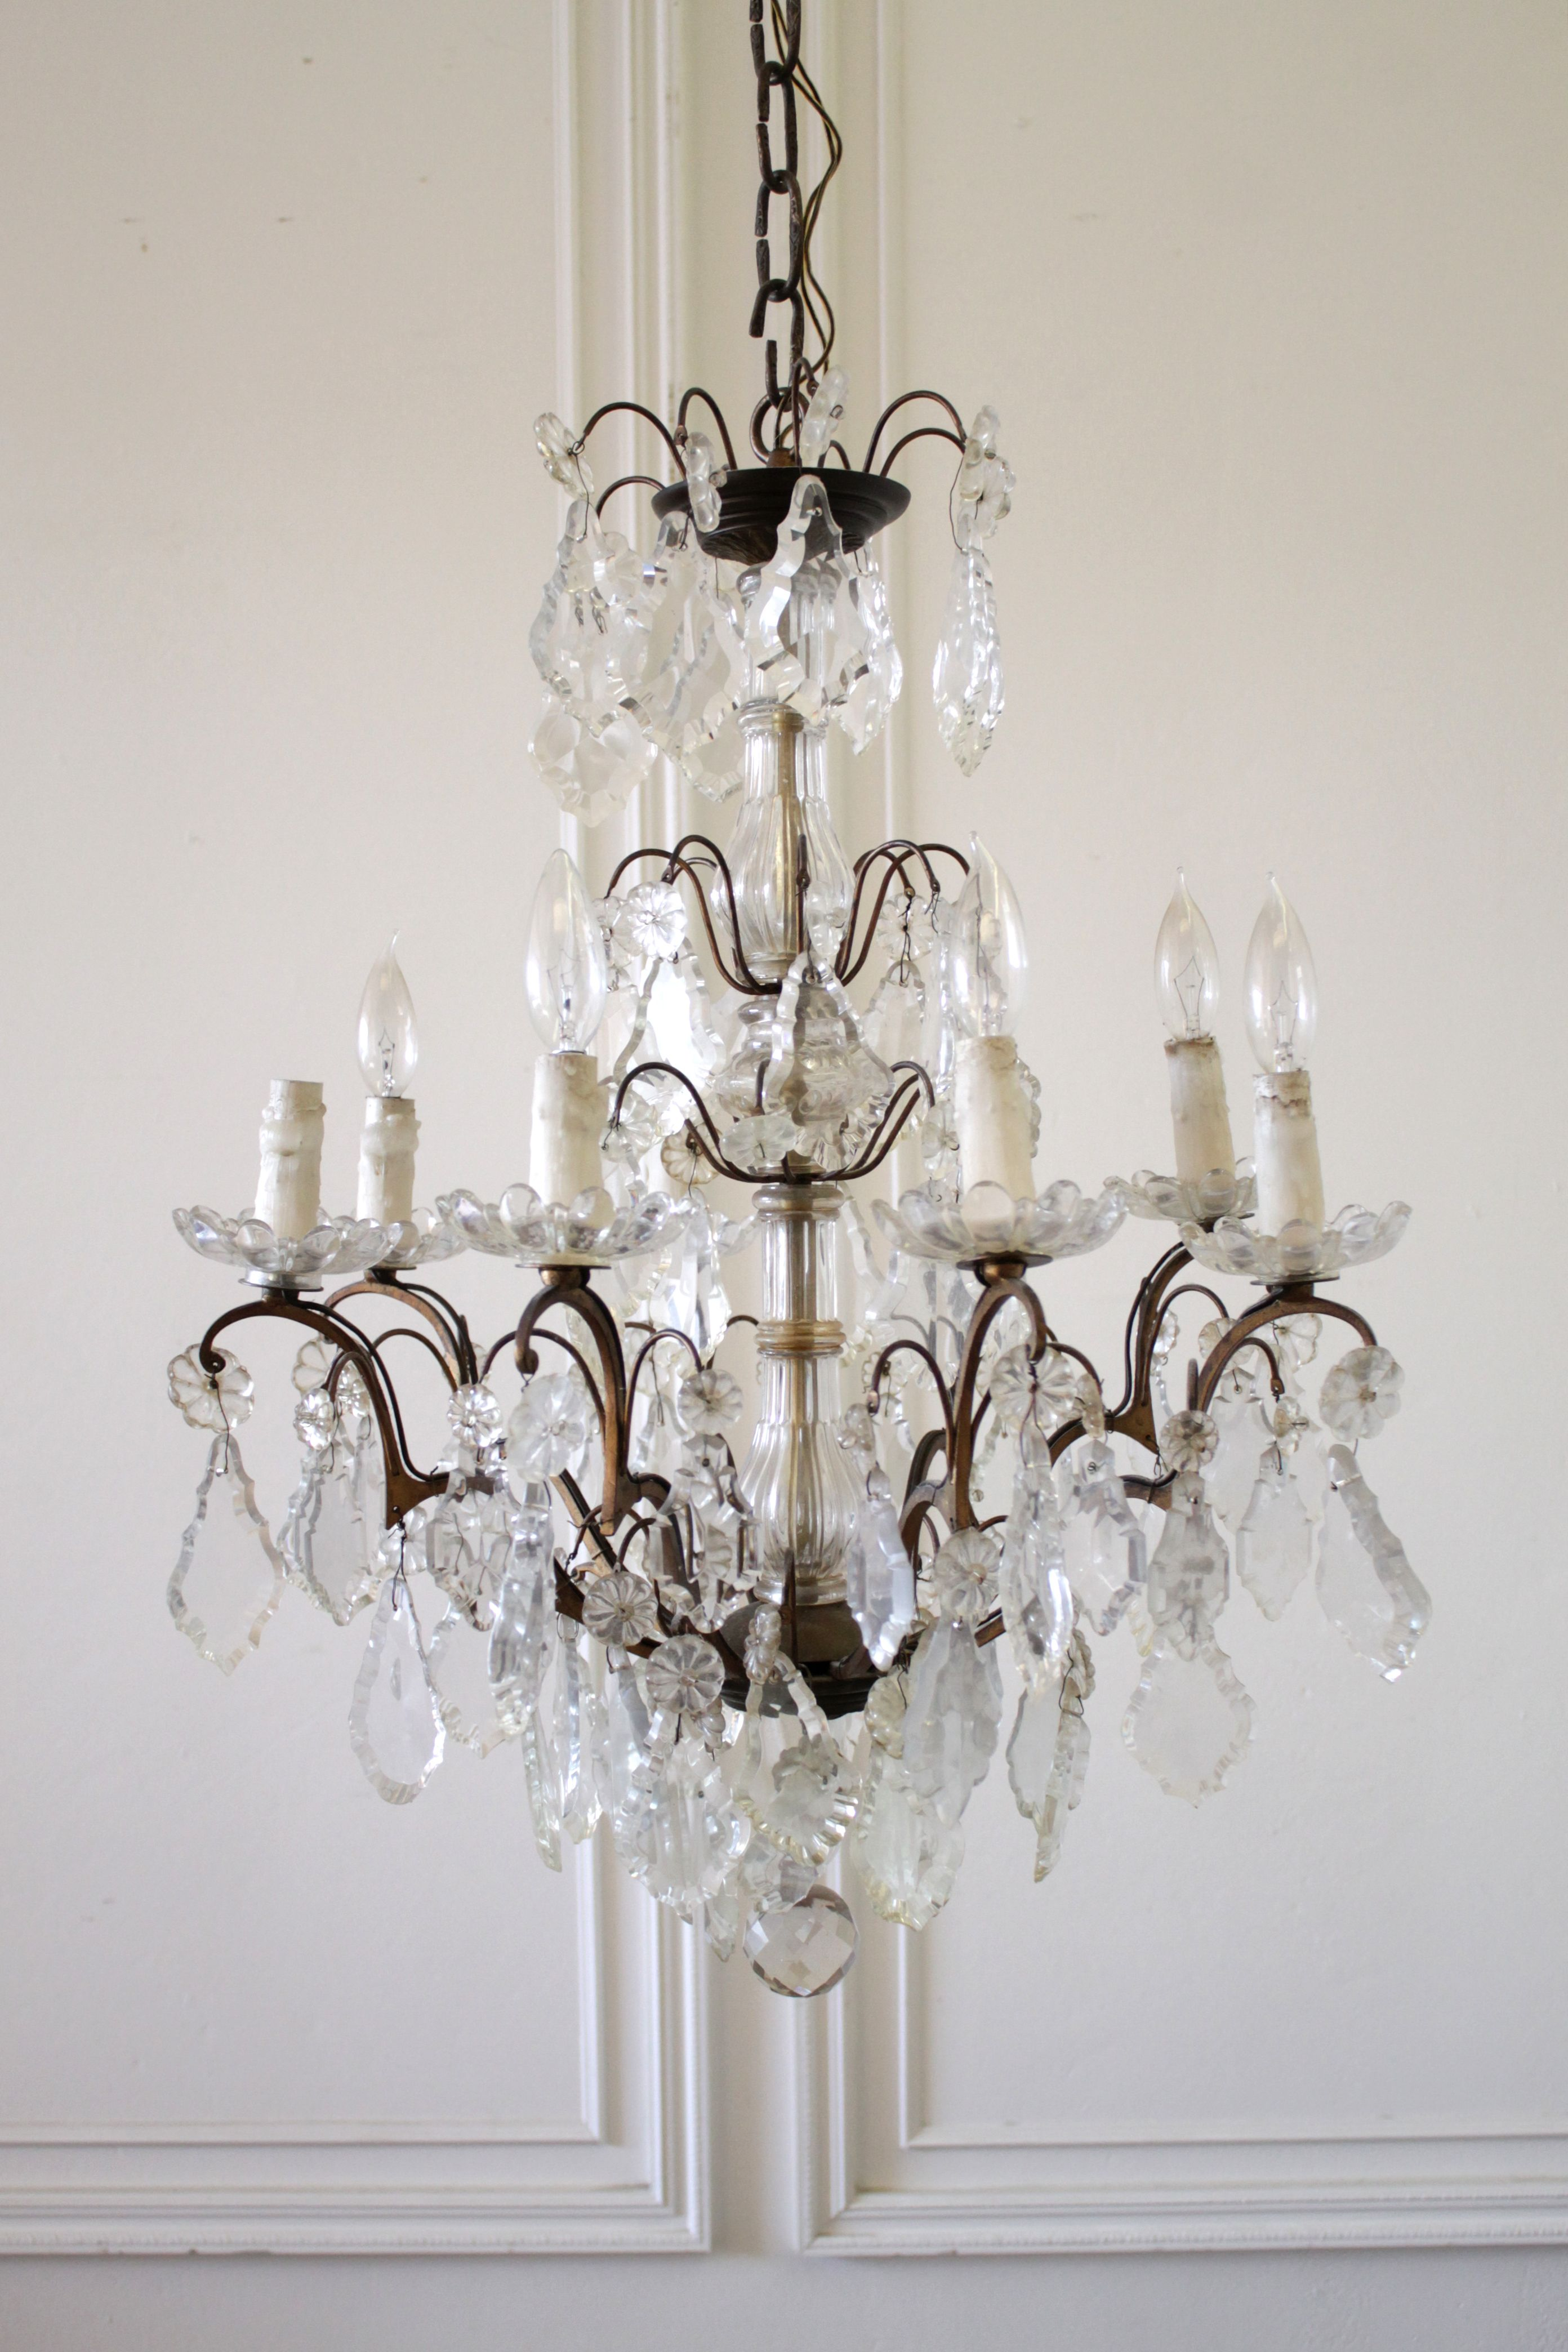 20th Century Antique Brass And Crystal Chandelier 2 390 Crystal Chandelier Chandelier Candle Cover